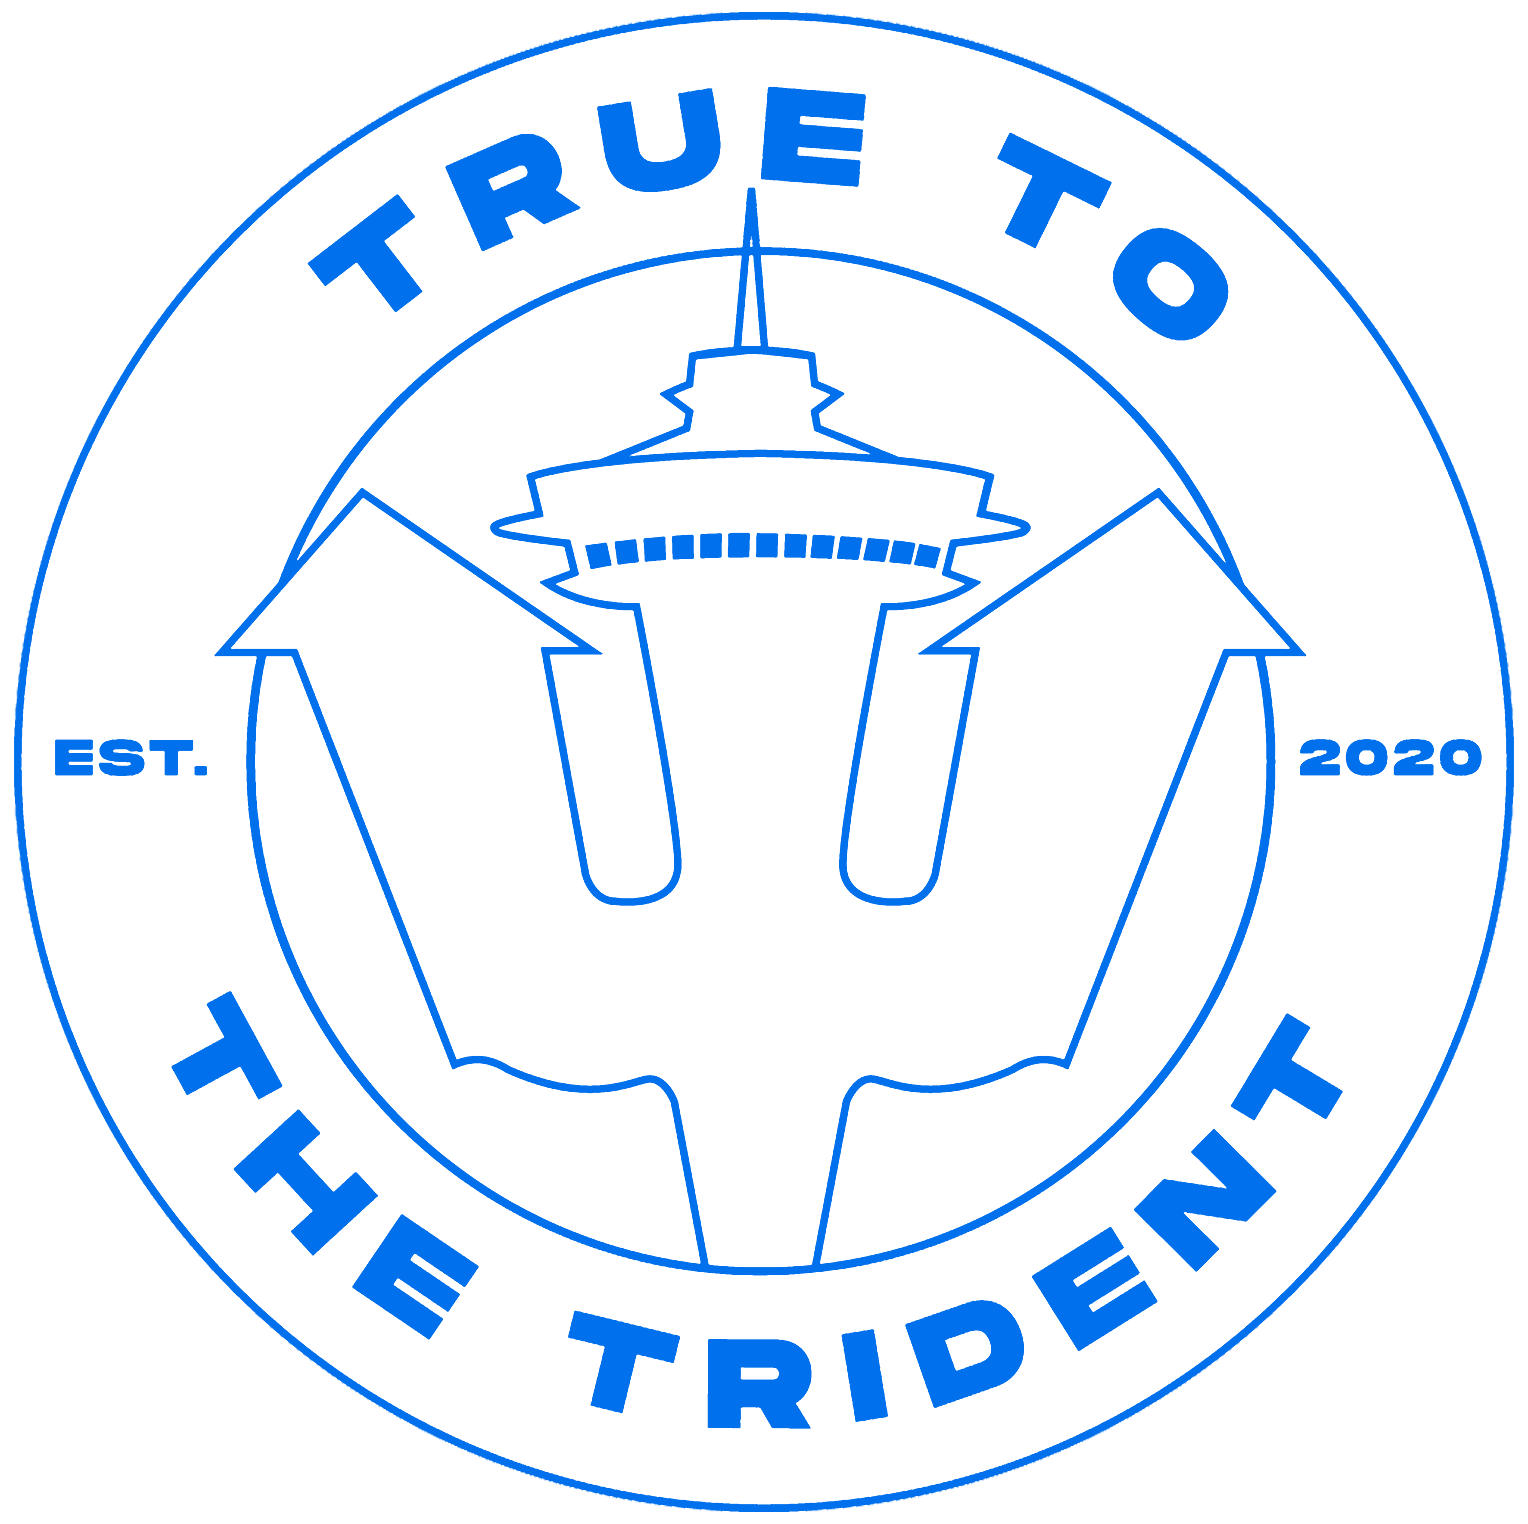 TRUE TO THE TRIDENT